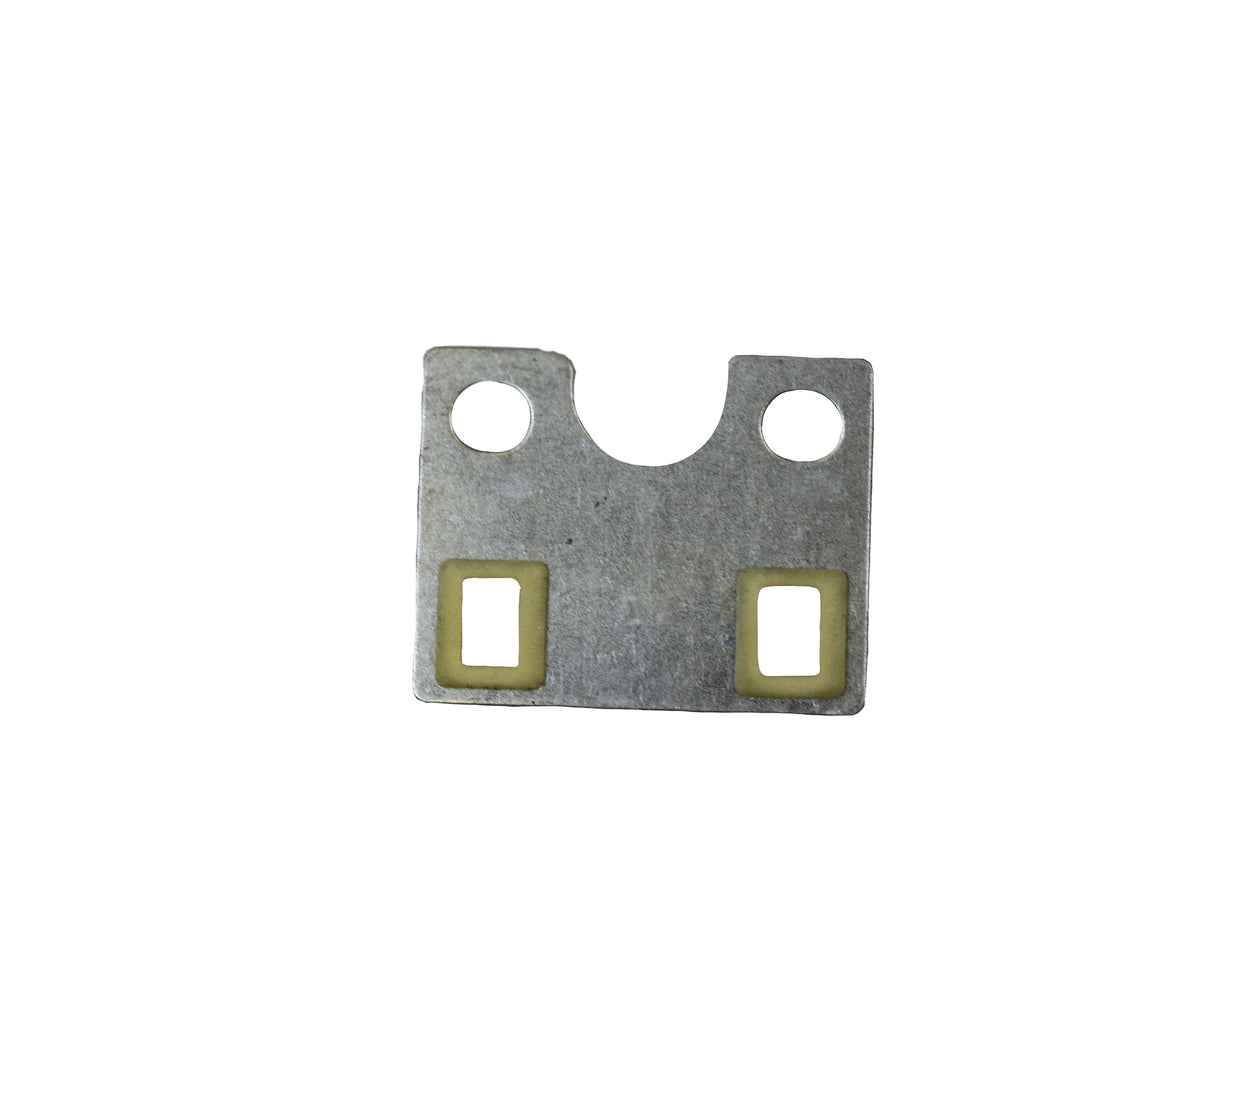 OEM Guideplate for our 460cc Engine & GX390/Clones